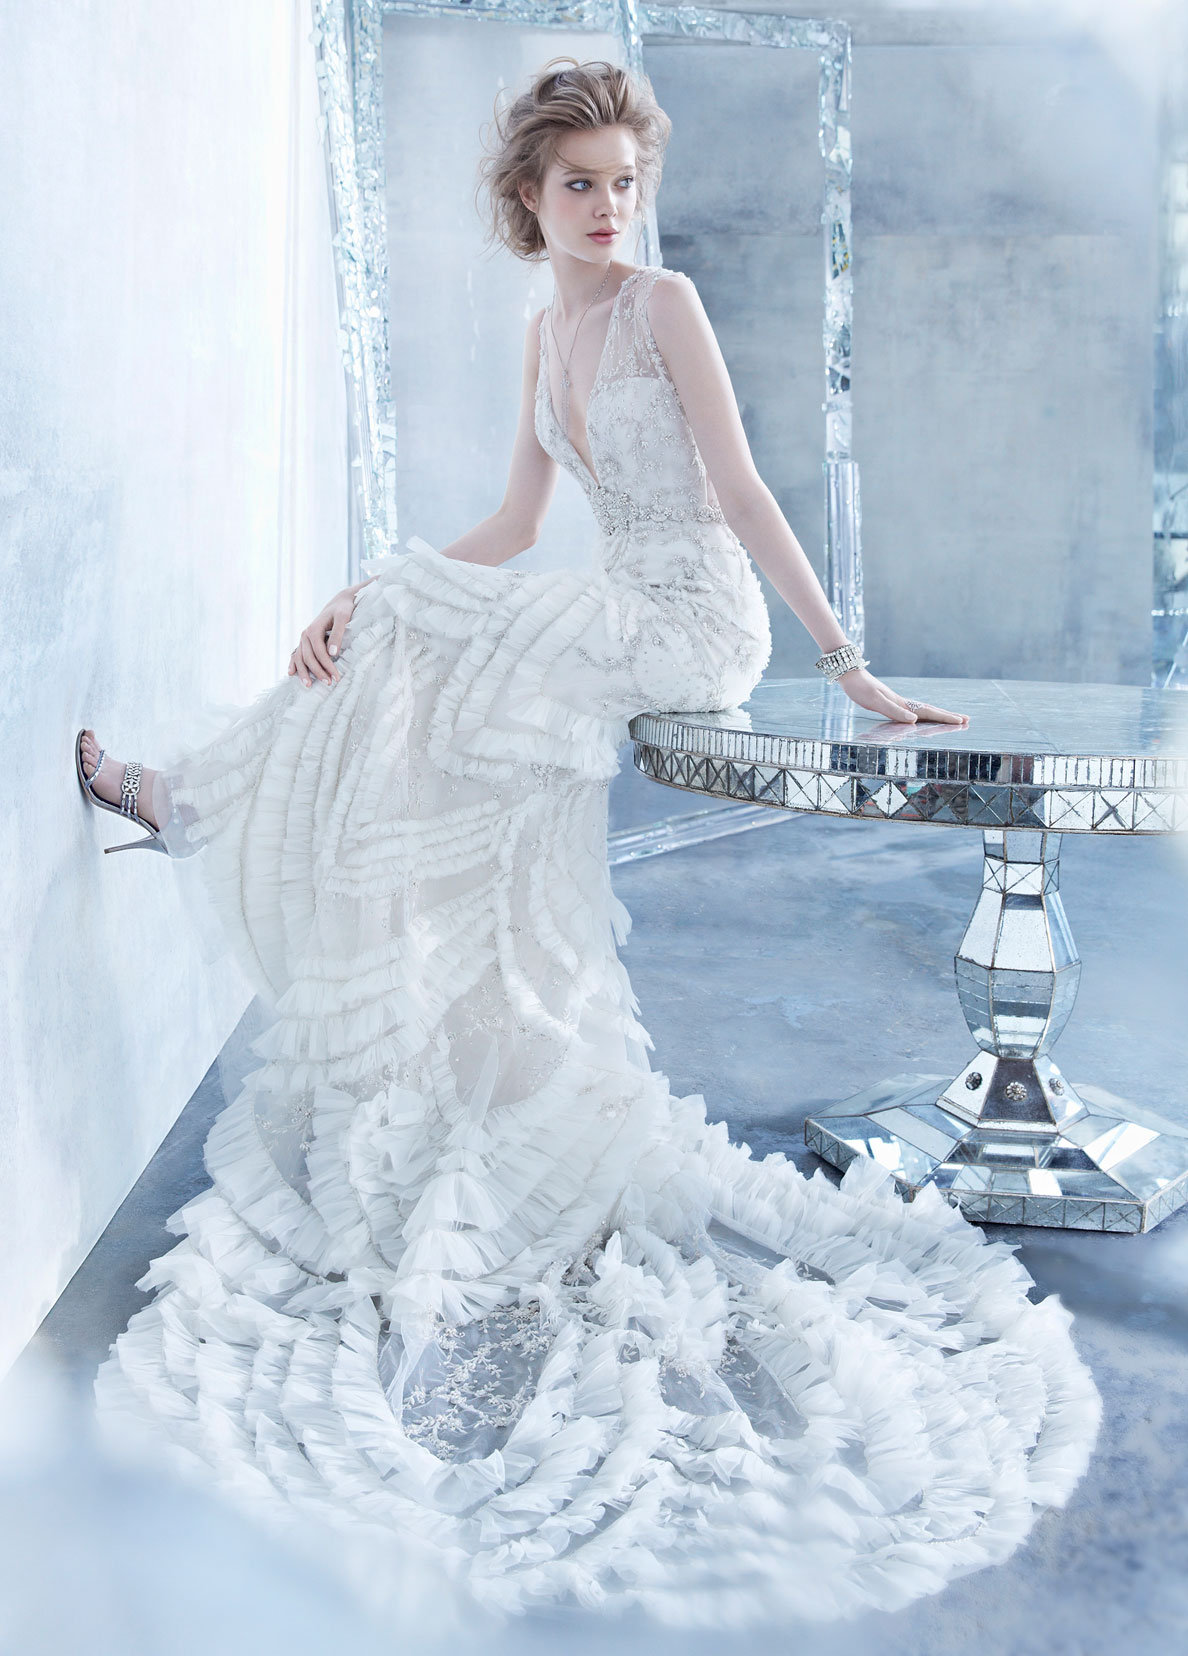 Dorable Phoebe Wedding Dress Image Collection - All Wedding Dresses ...